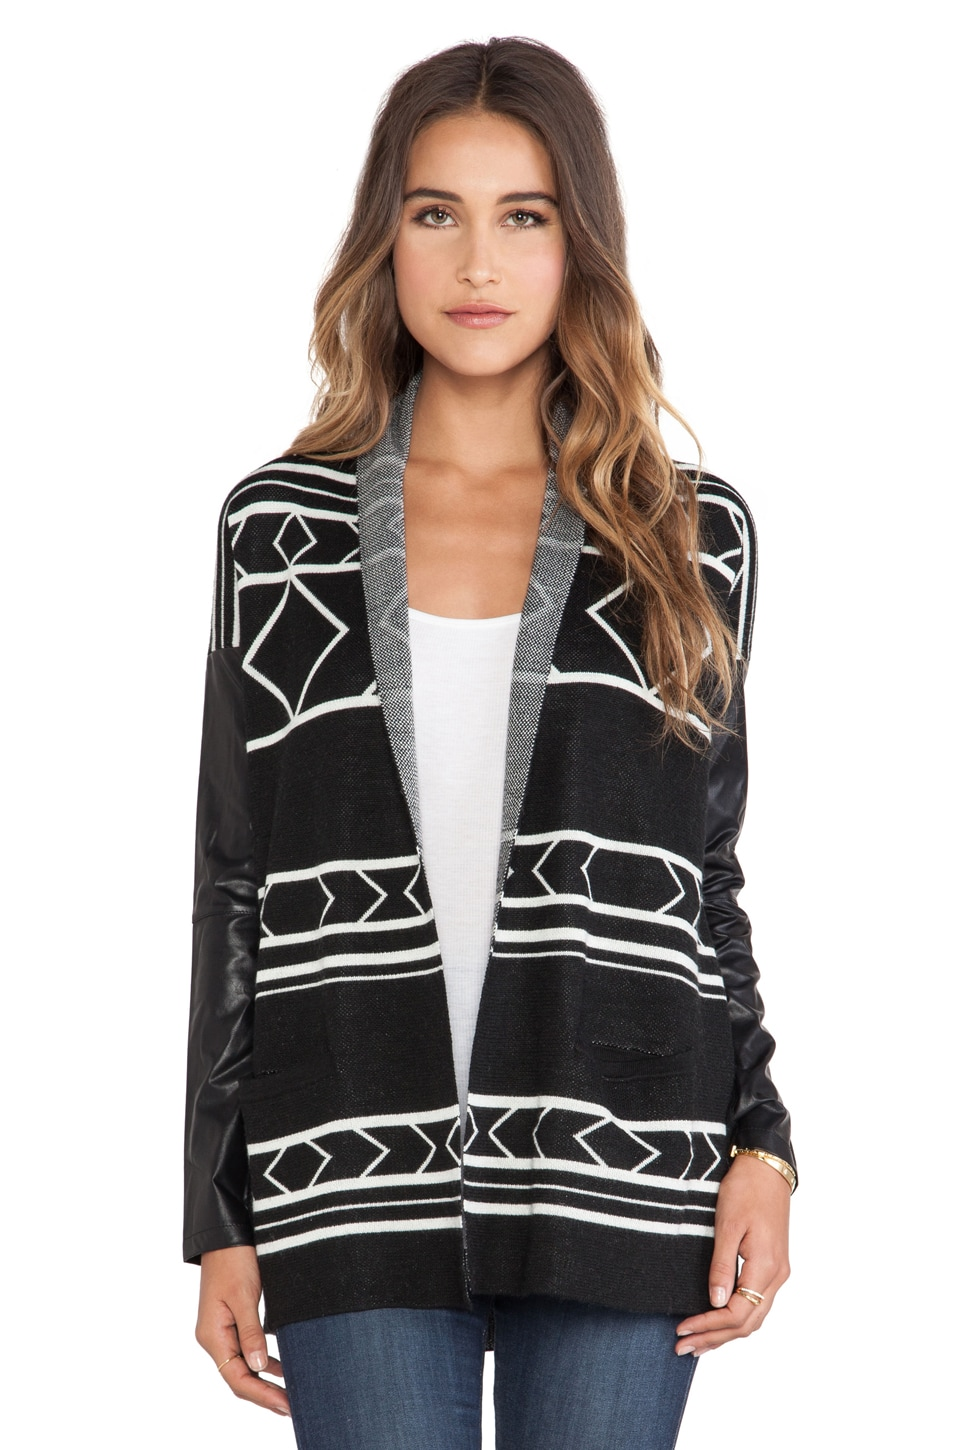 Central Park West Buffalo Tribal Cardigan in Black Tribal